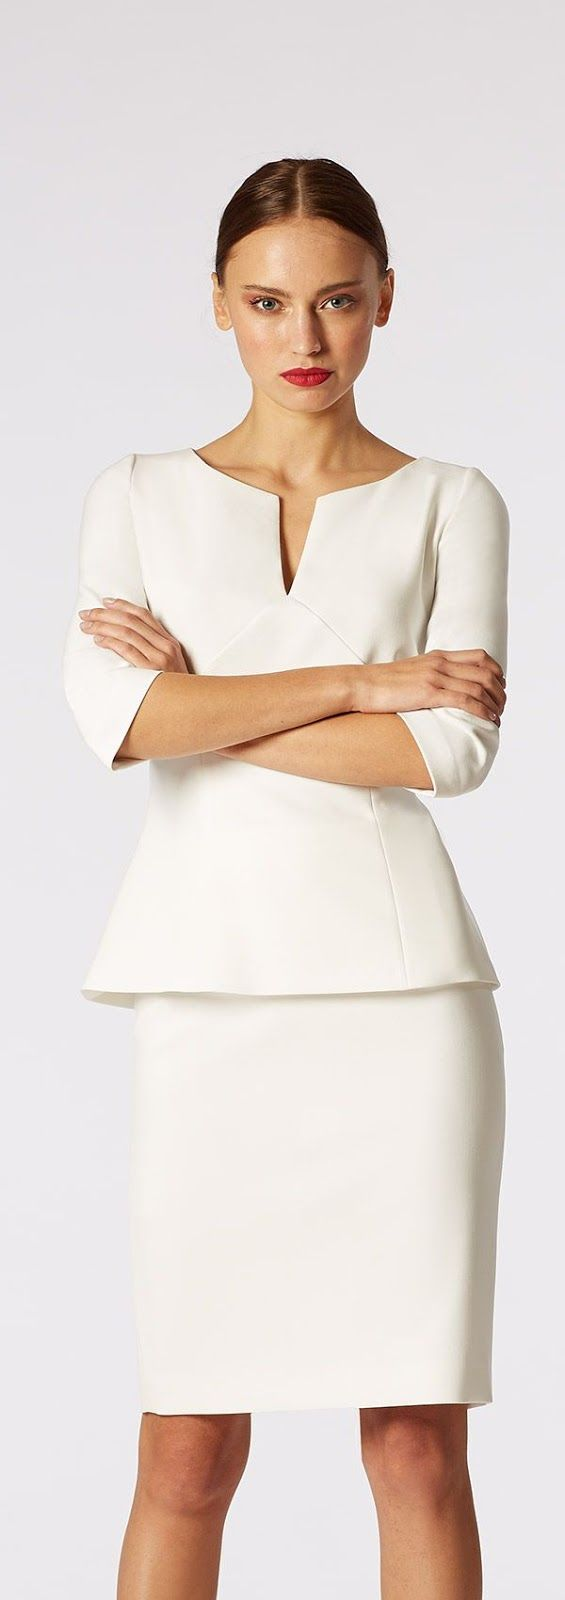 Latest fashion trends: Workwear | Chic white outfit